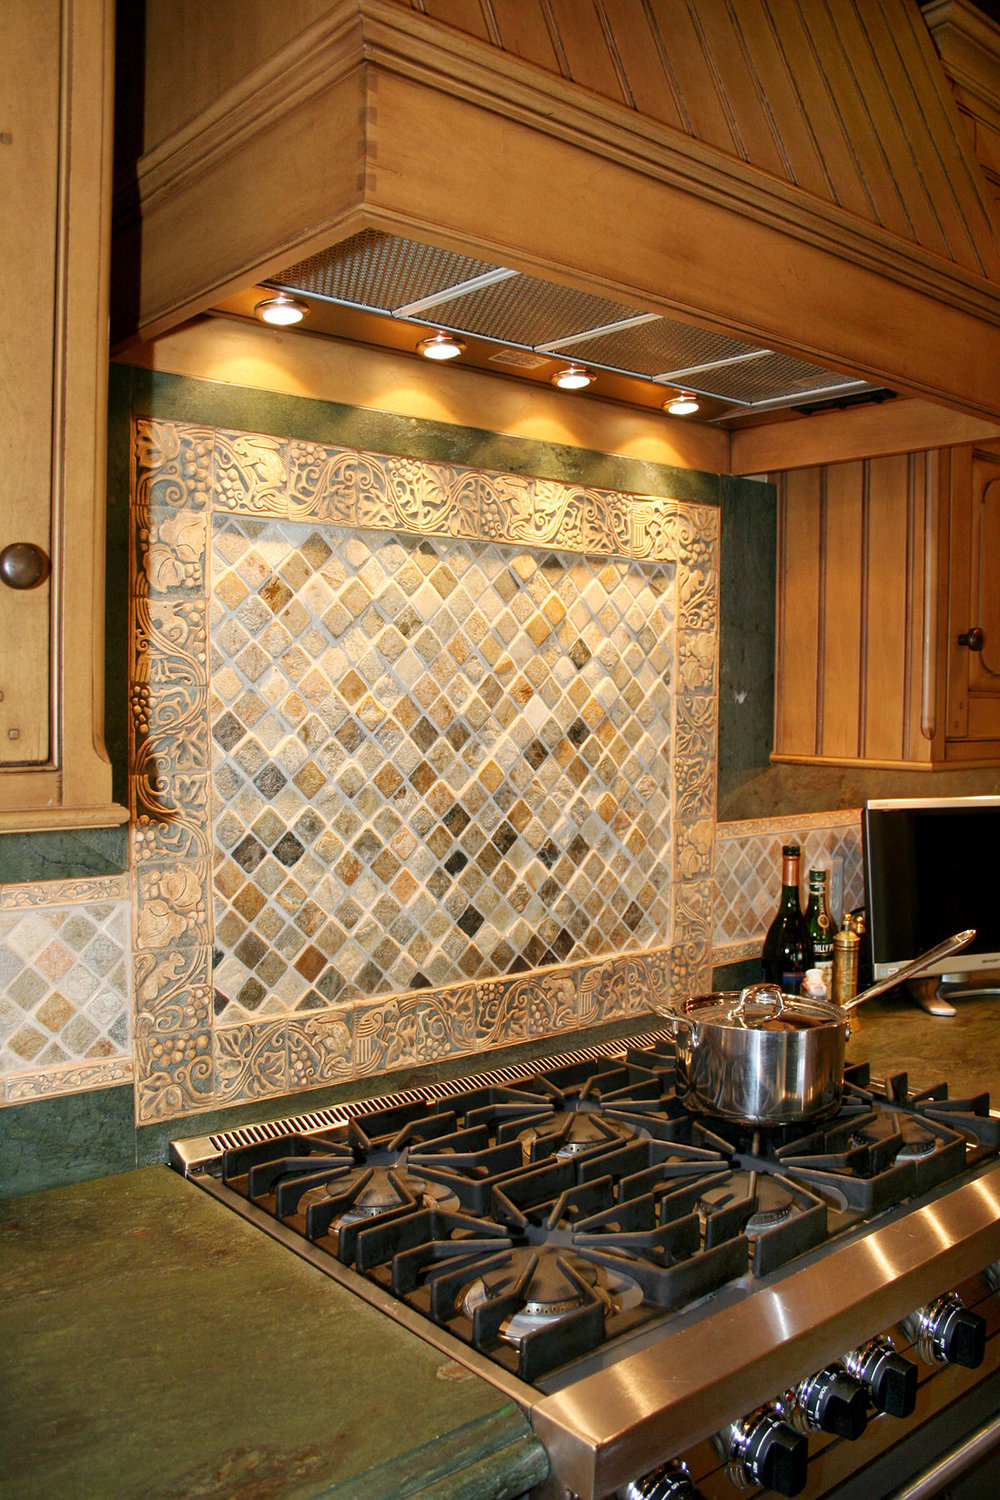 park-city-utah-backsplash-interior-design-montgomery-home-1.jpg